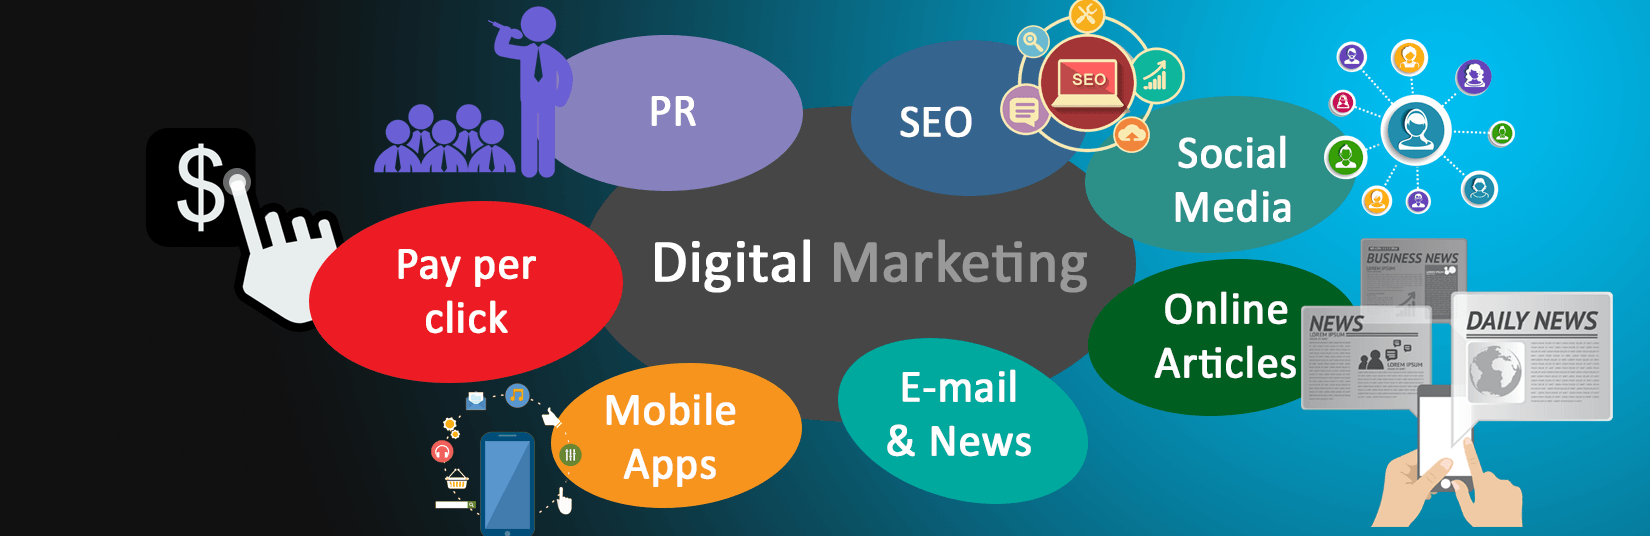 Content writing services for digital marketing vs